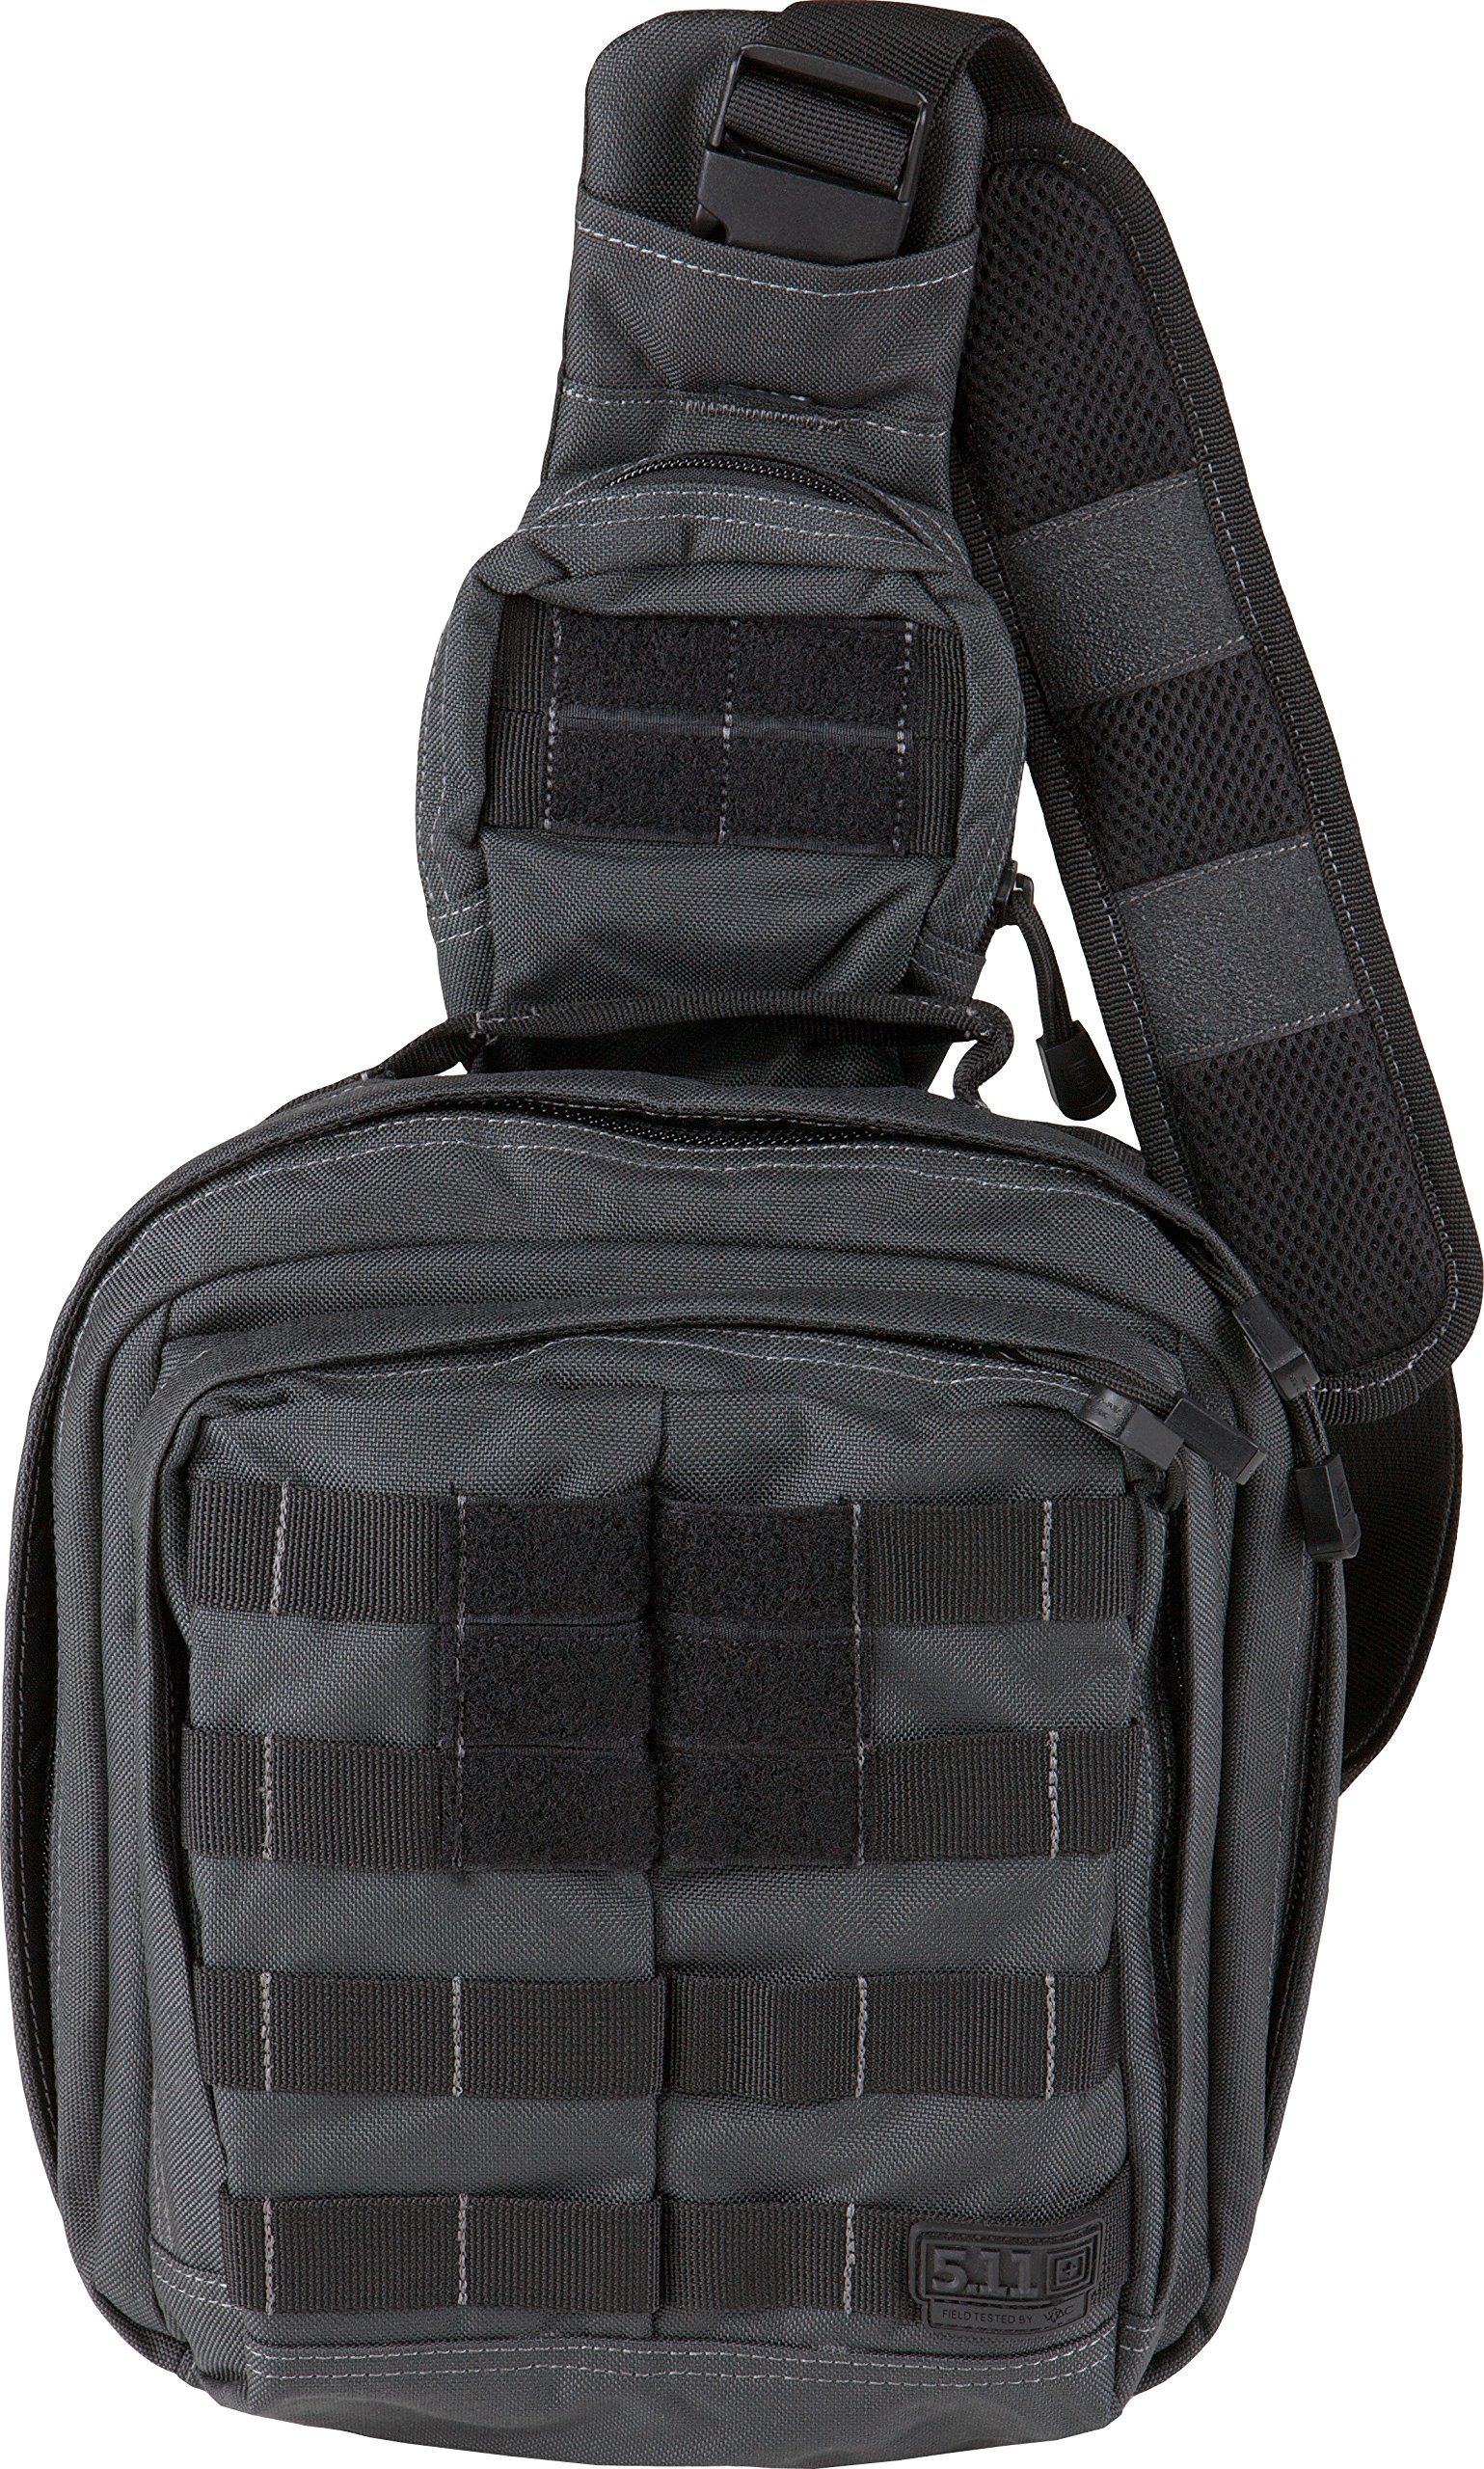 5.11 RUSH MOAB 6 Tactical Sling Pack Military Molle Backpack Bag, Style 56963, Double Tap